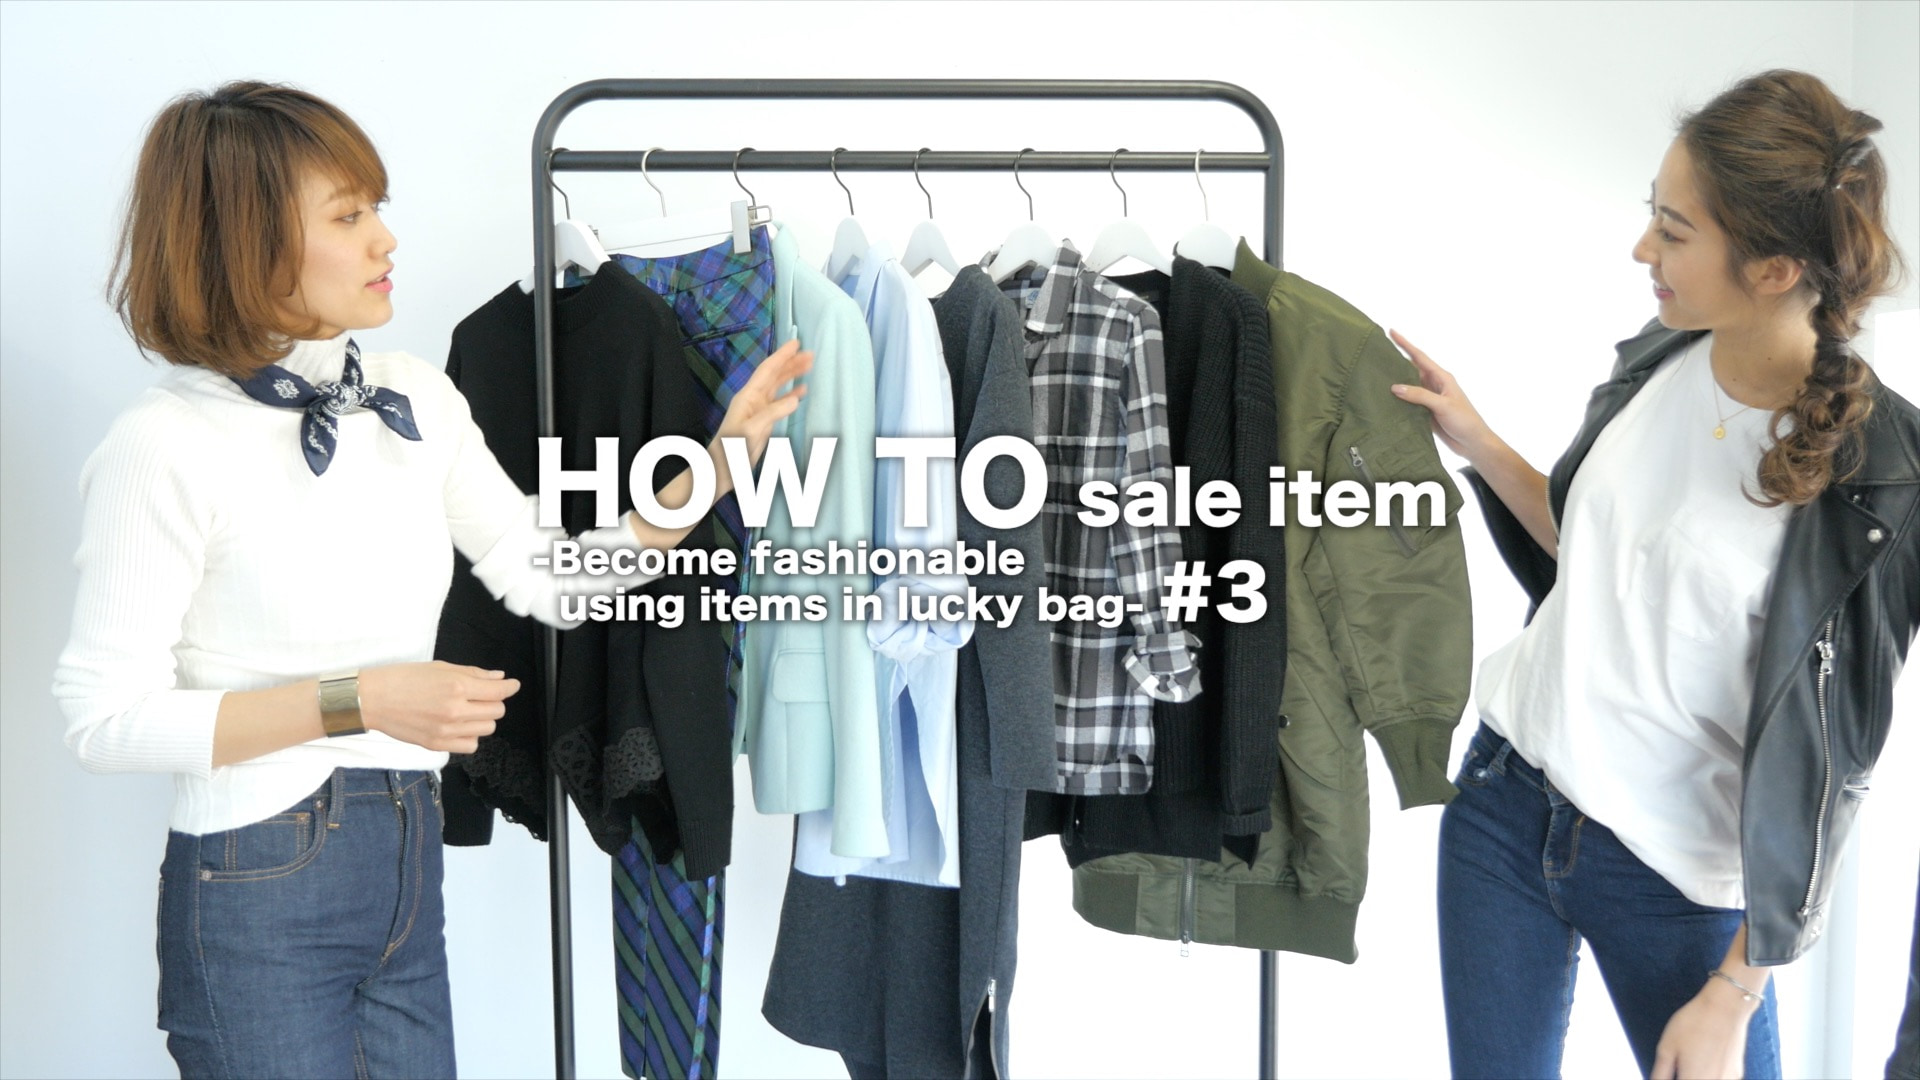 HOW TO sale item ~ 福袋の中身で賢くオシャレ~#3 Mix Coordinate編